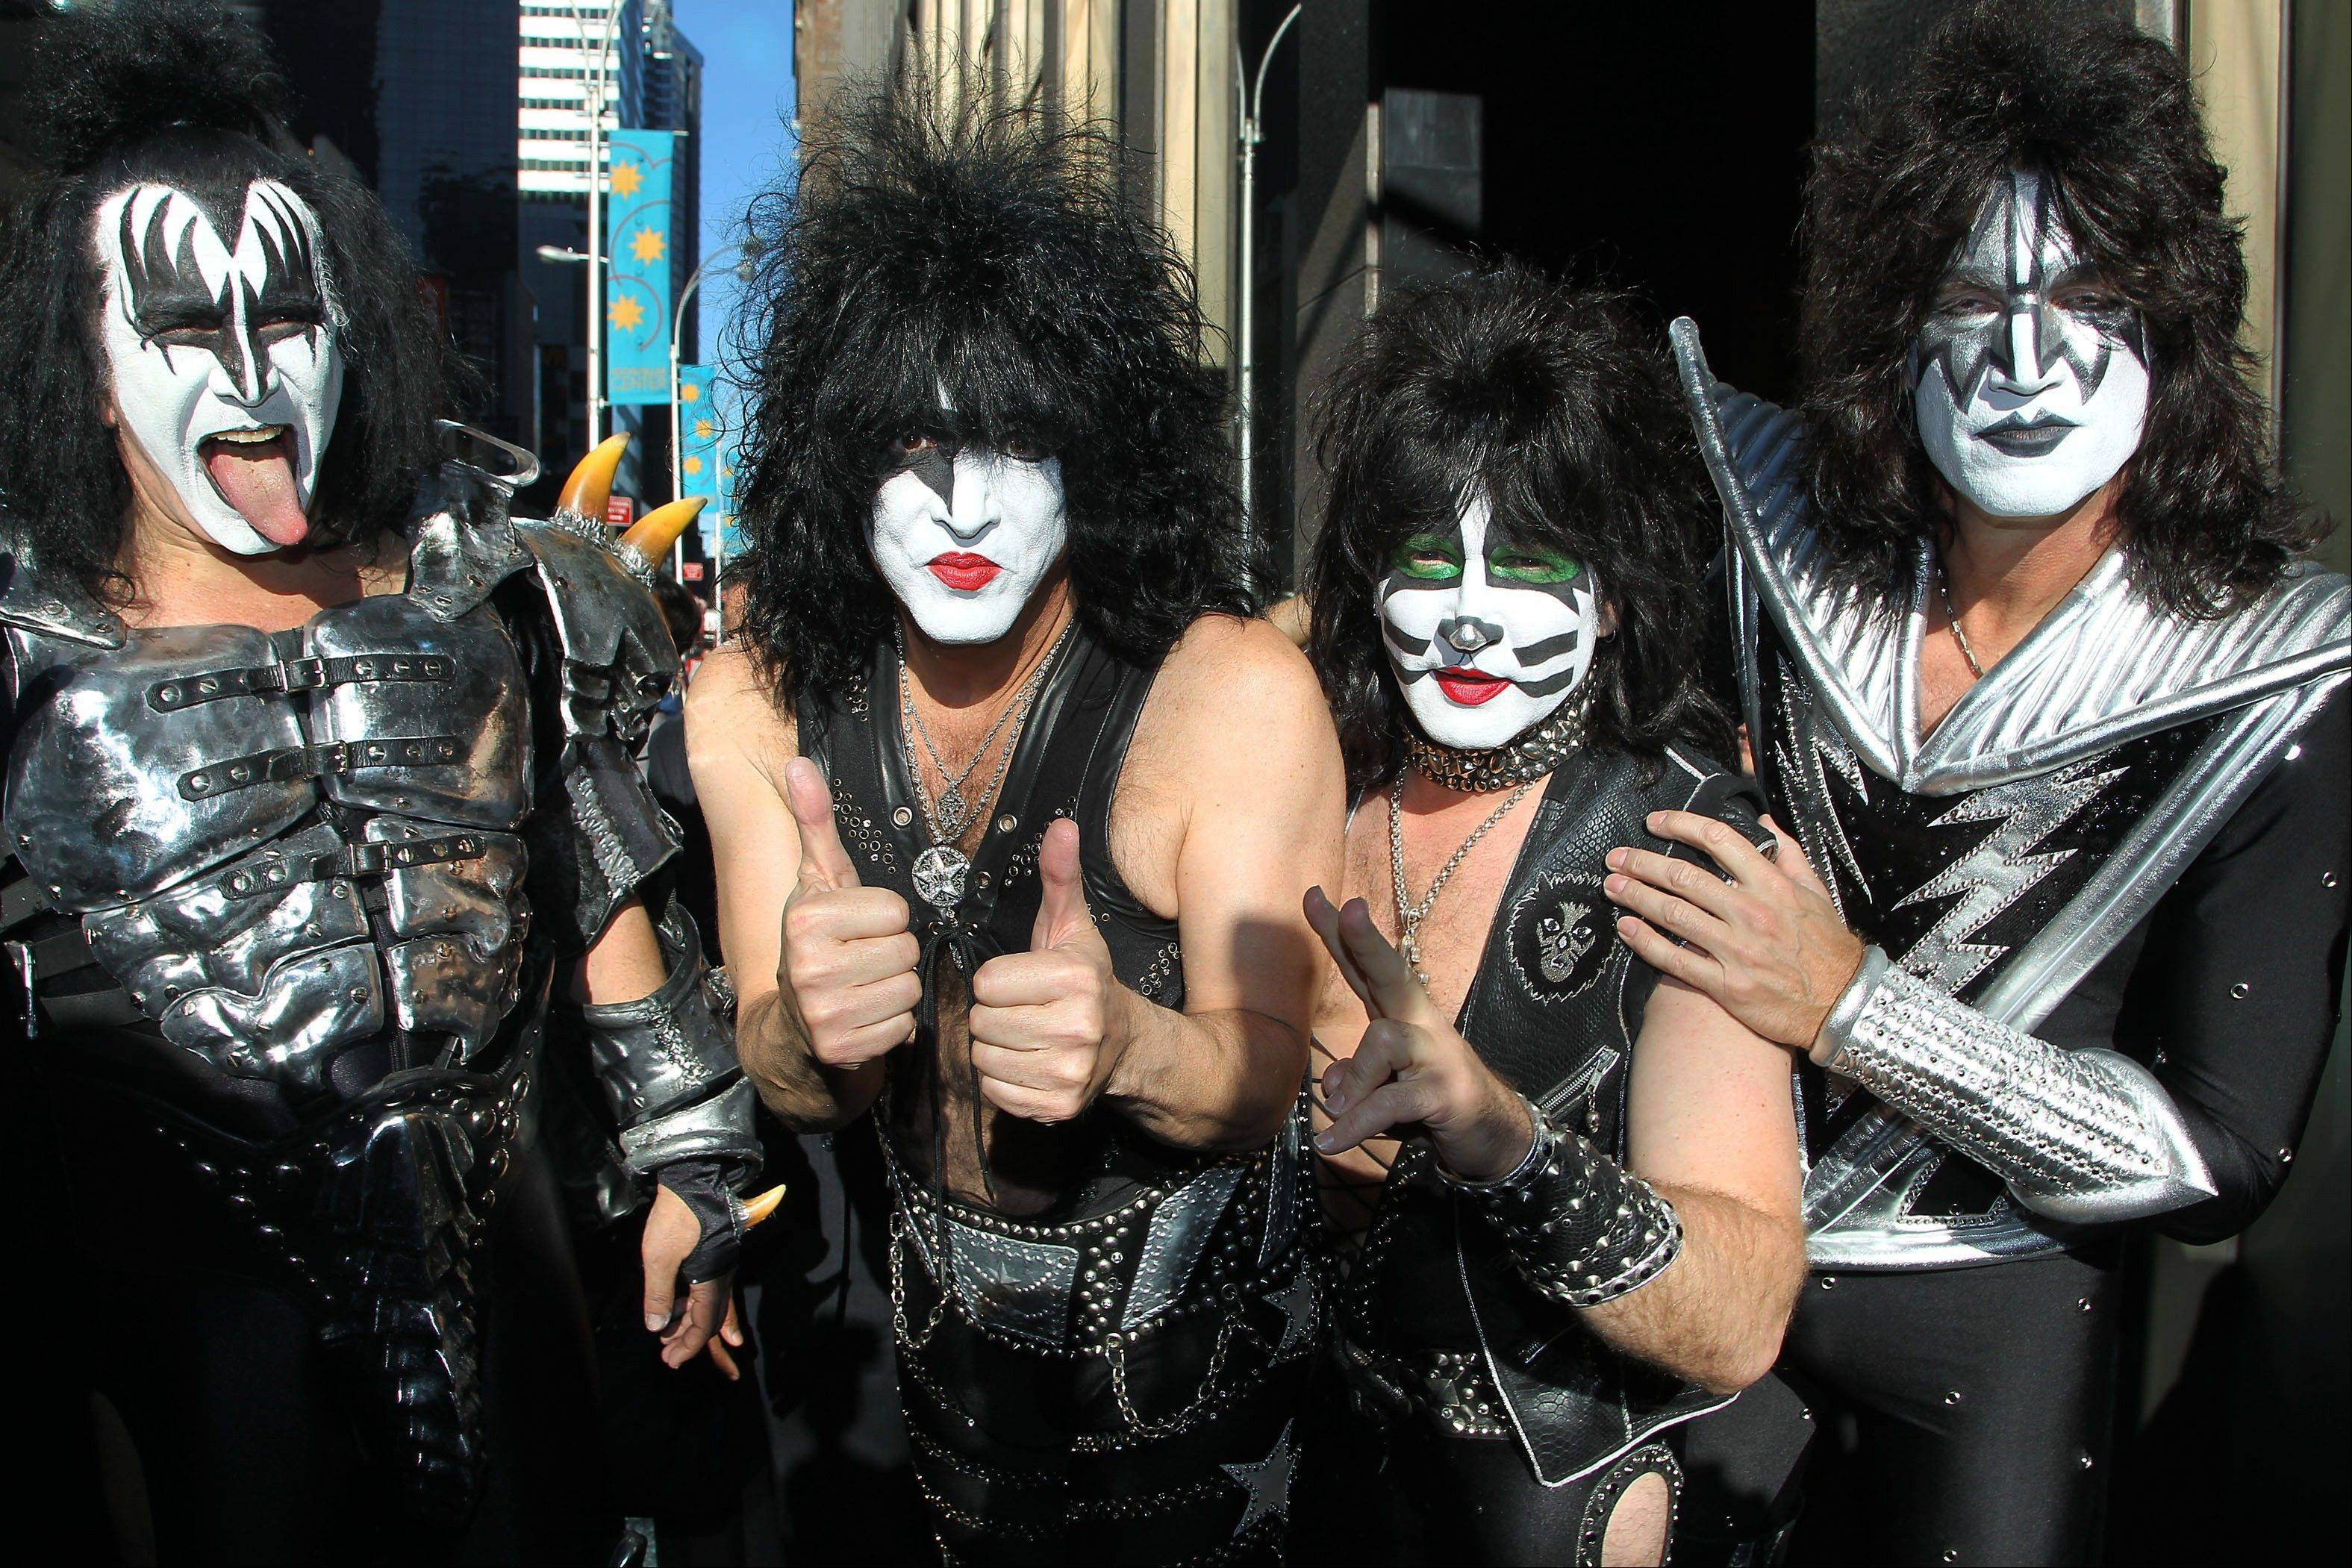 Gene Simmons, Paul Stanley, Eric Singer and Tommy Thayer of KISS will be inducted into the 2014 Rock and Roll Hall of Fame on April 10 at the Barclays Center in New York.